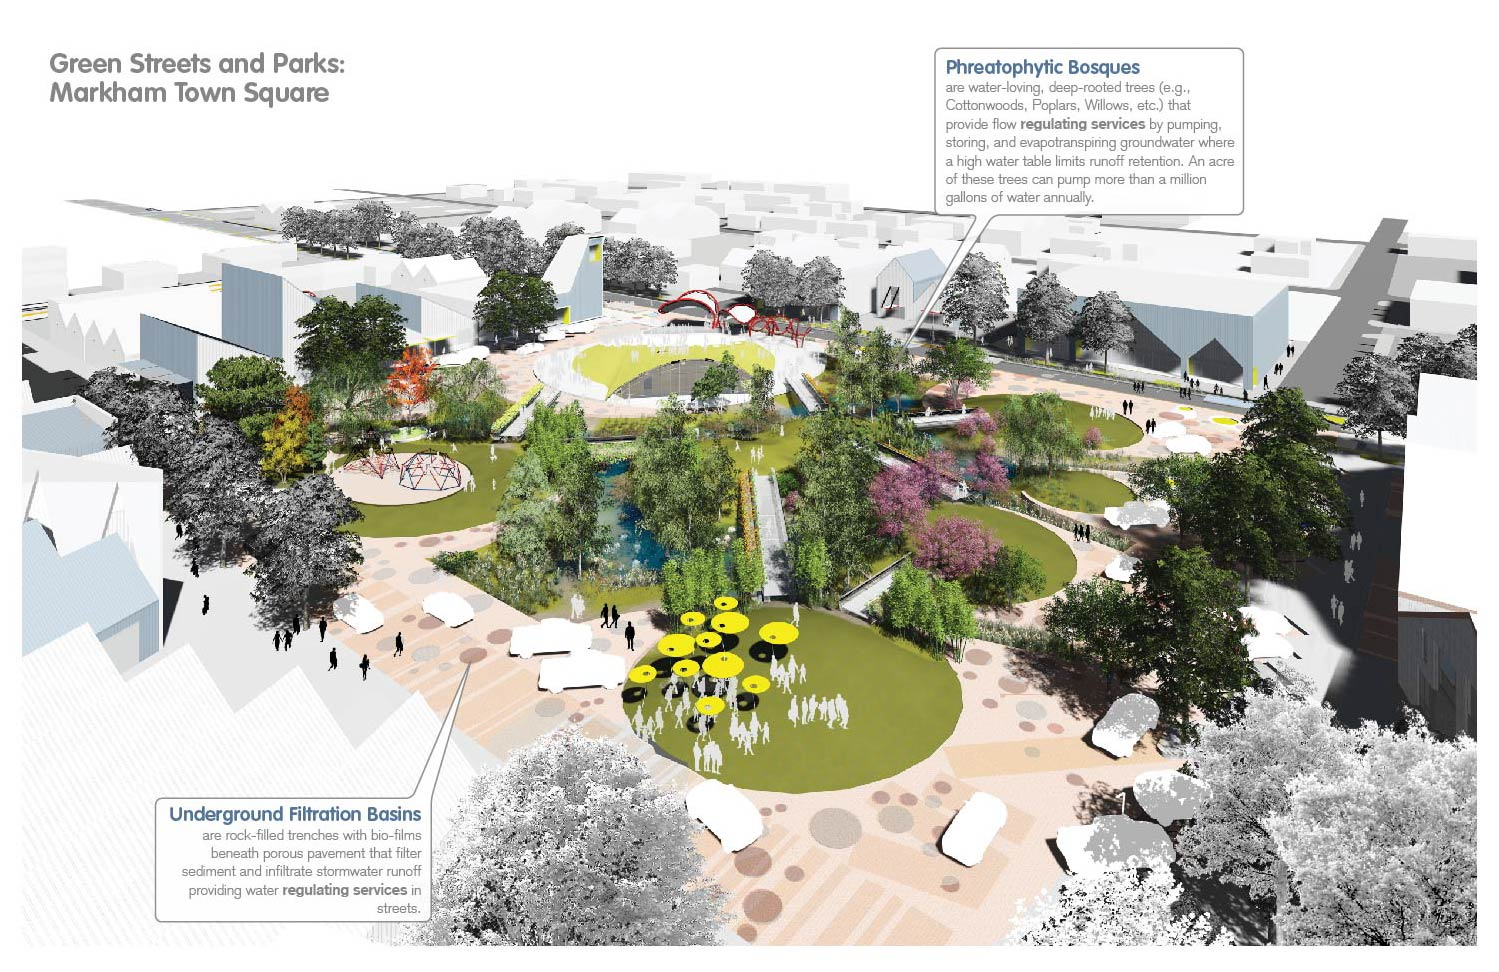 Town Square: underground filtration basins filter sediment and infiltrate stormwater. University of Arkansas Community Design Center